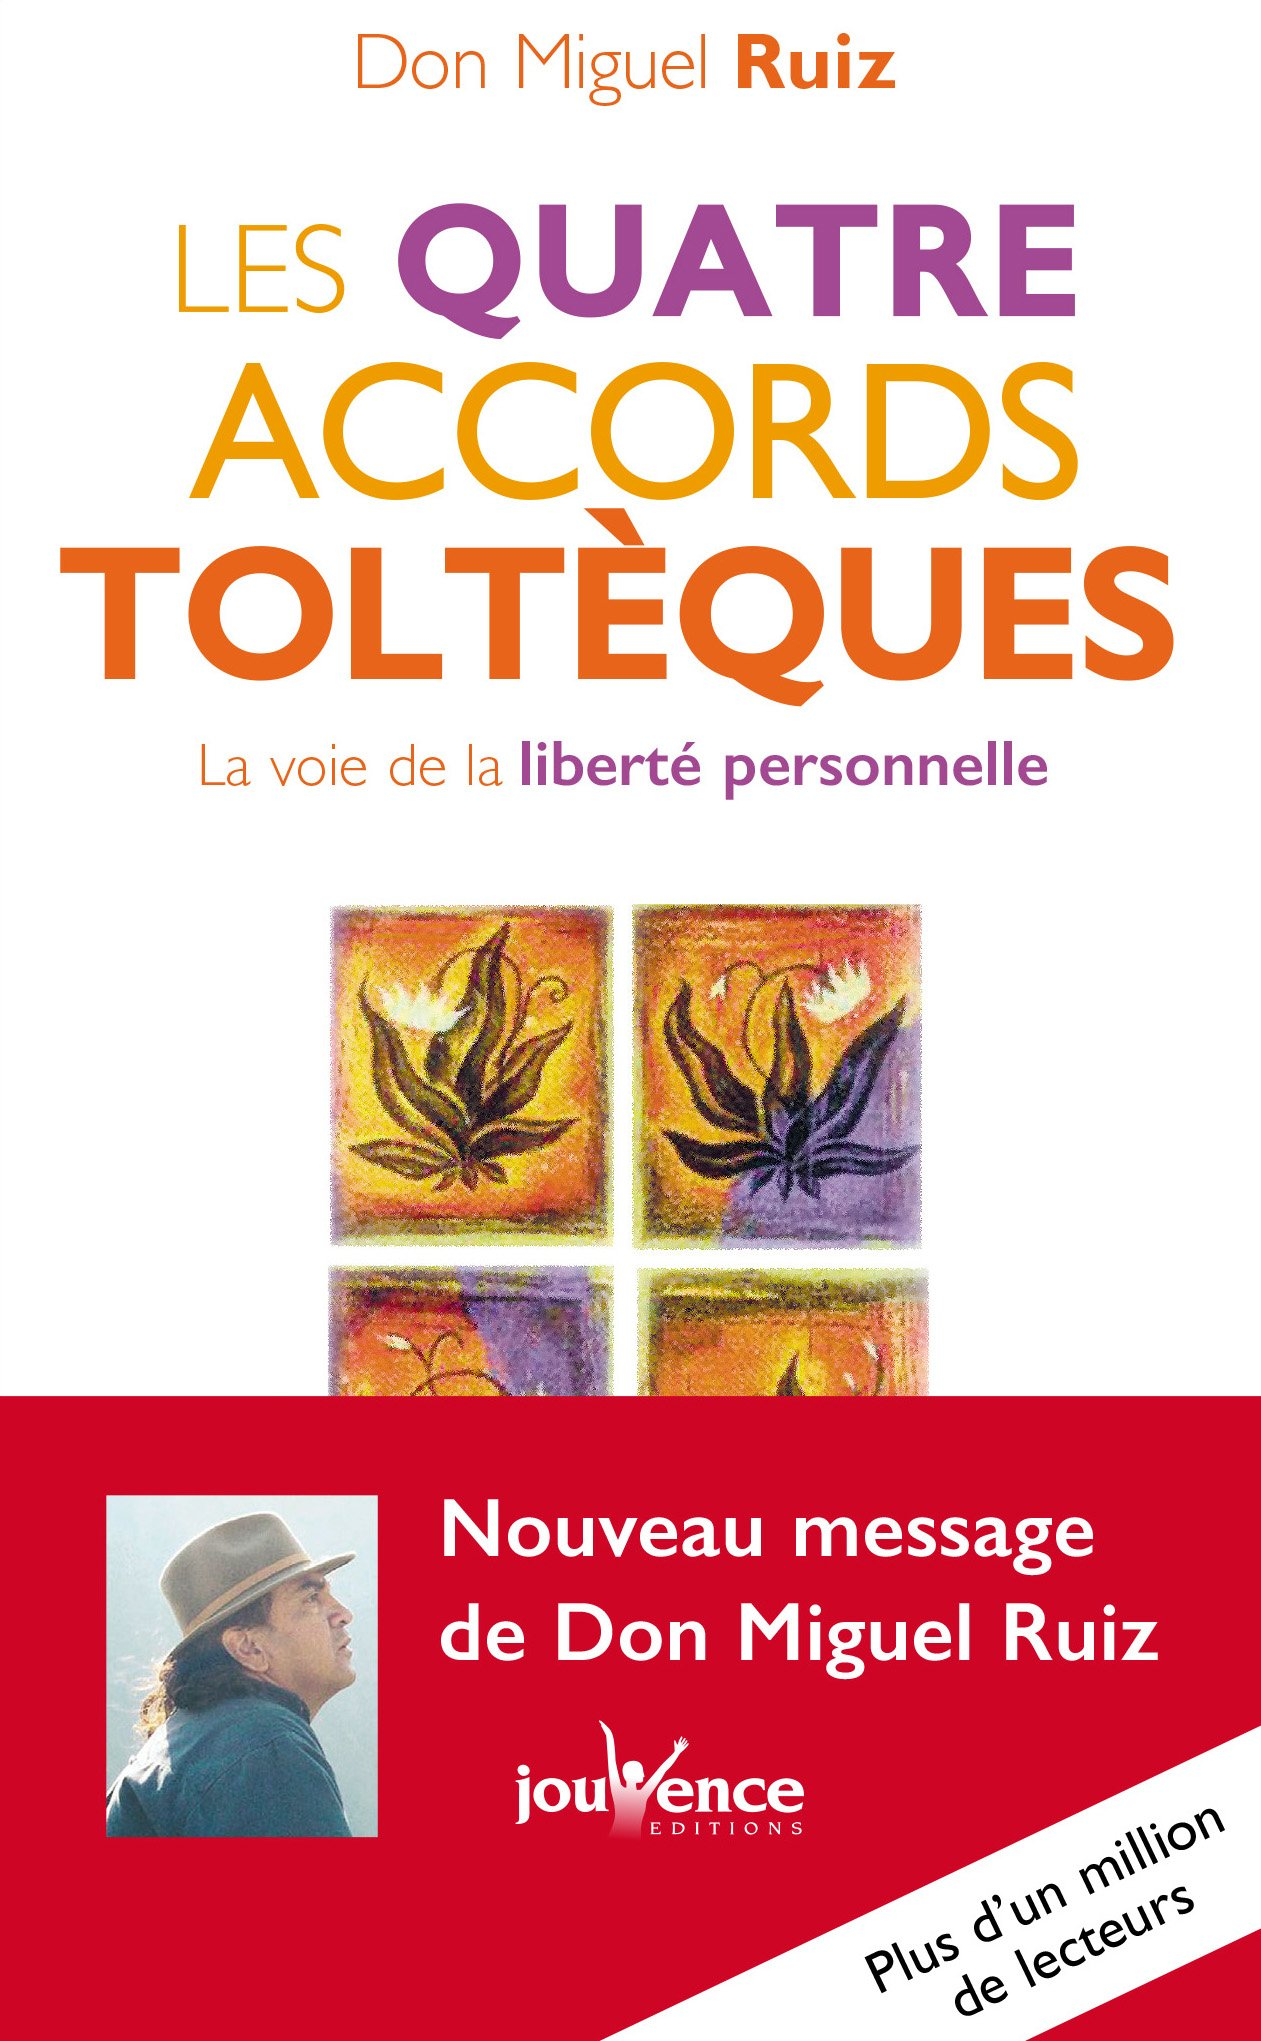 Livre Les quatre accords toltèques - Don Miguel Ruiz - Les 4 accords toltèques